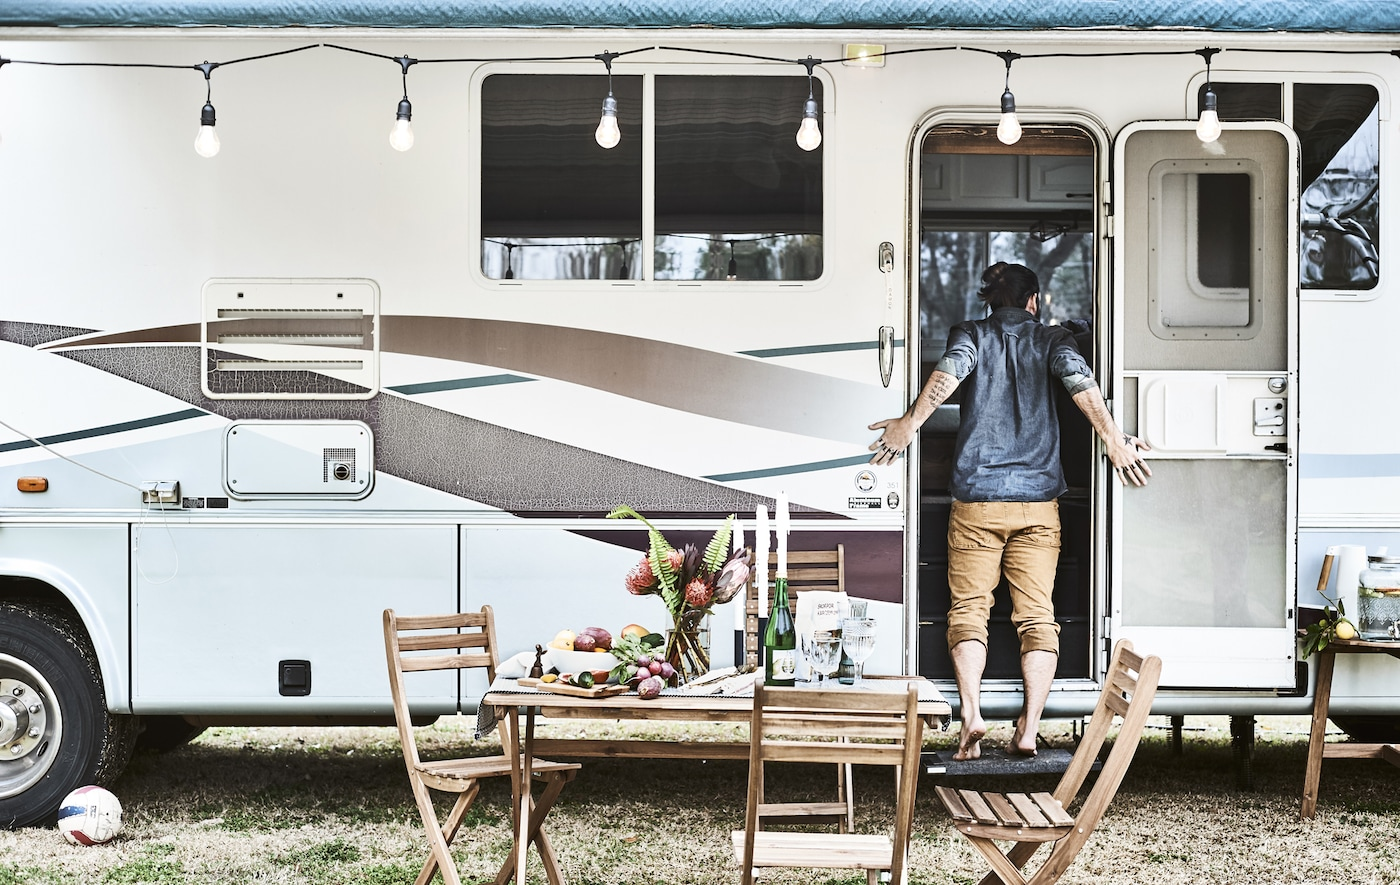 Outdoor furniture outside a motorhome decorated with lights, where Karlton stands in the doorway.